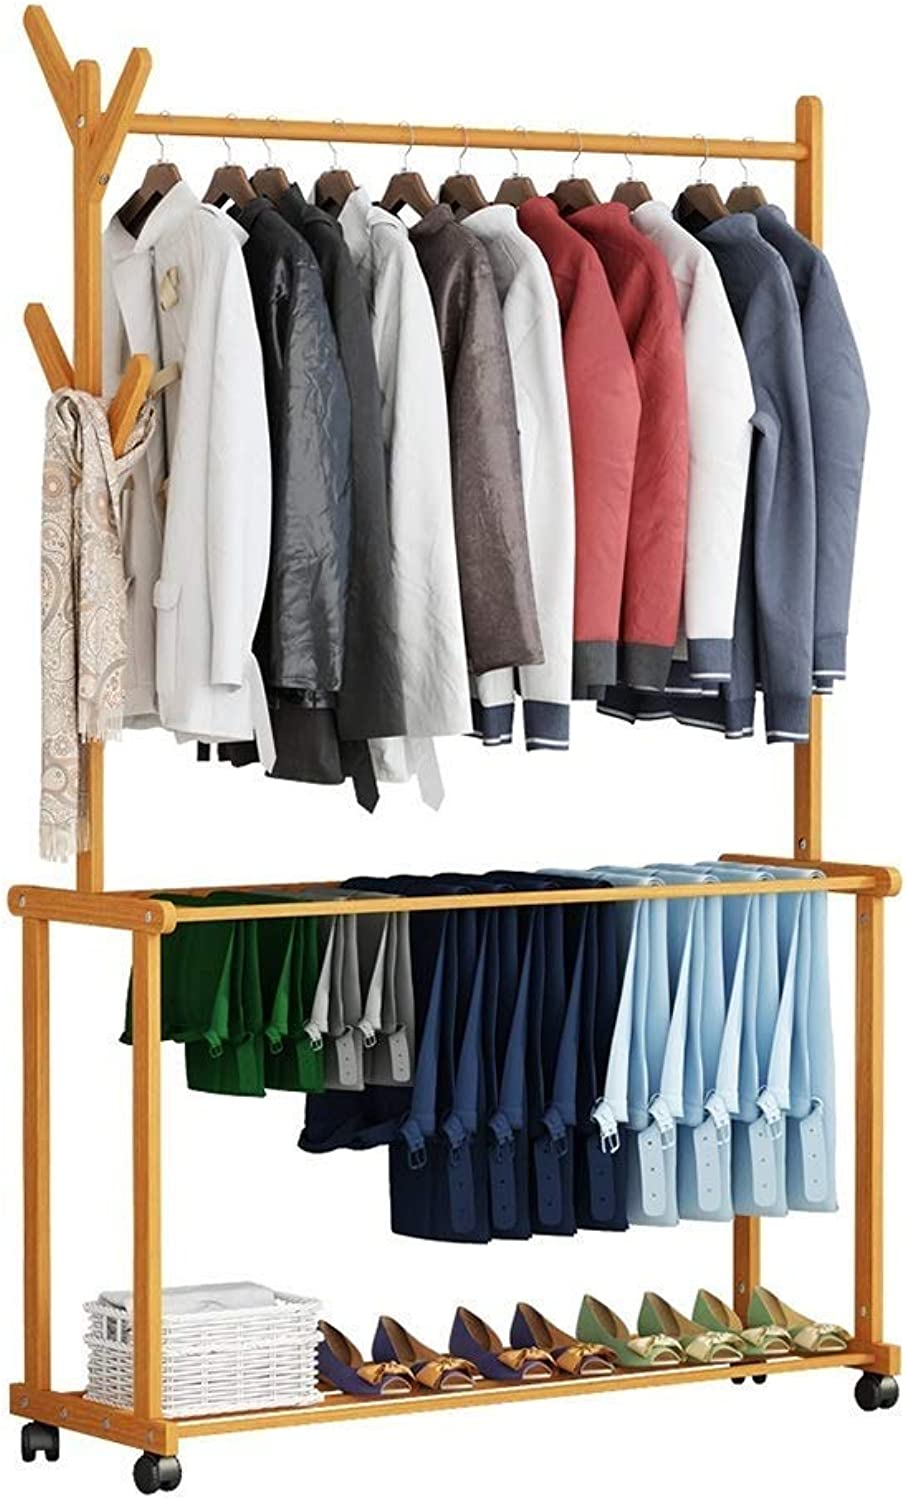 LQQGXLModern Minimalist Coat Rack, Bamboo Wood Coat Rack Free Standing Removable with Coat Hooks One Layer shoes Rack (Size   60x37x175cm)